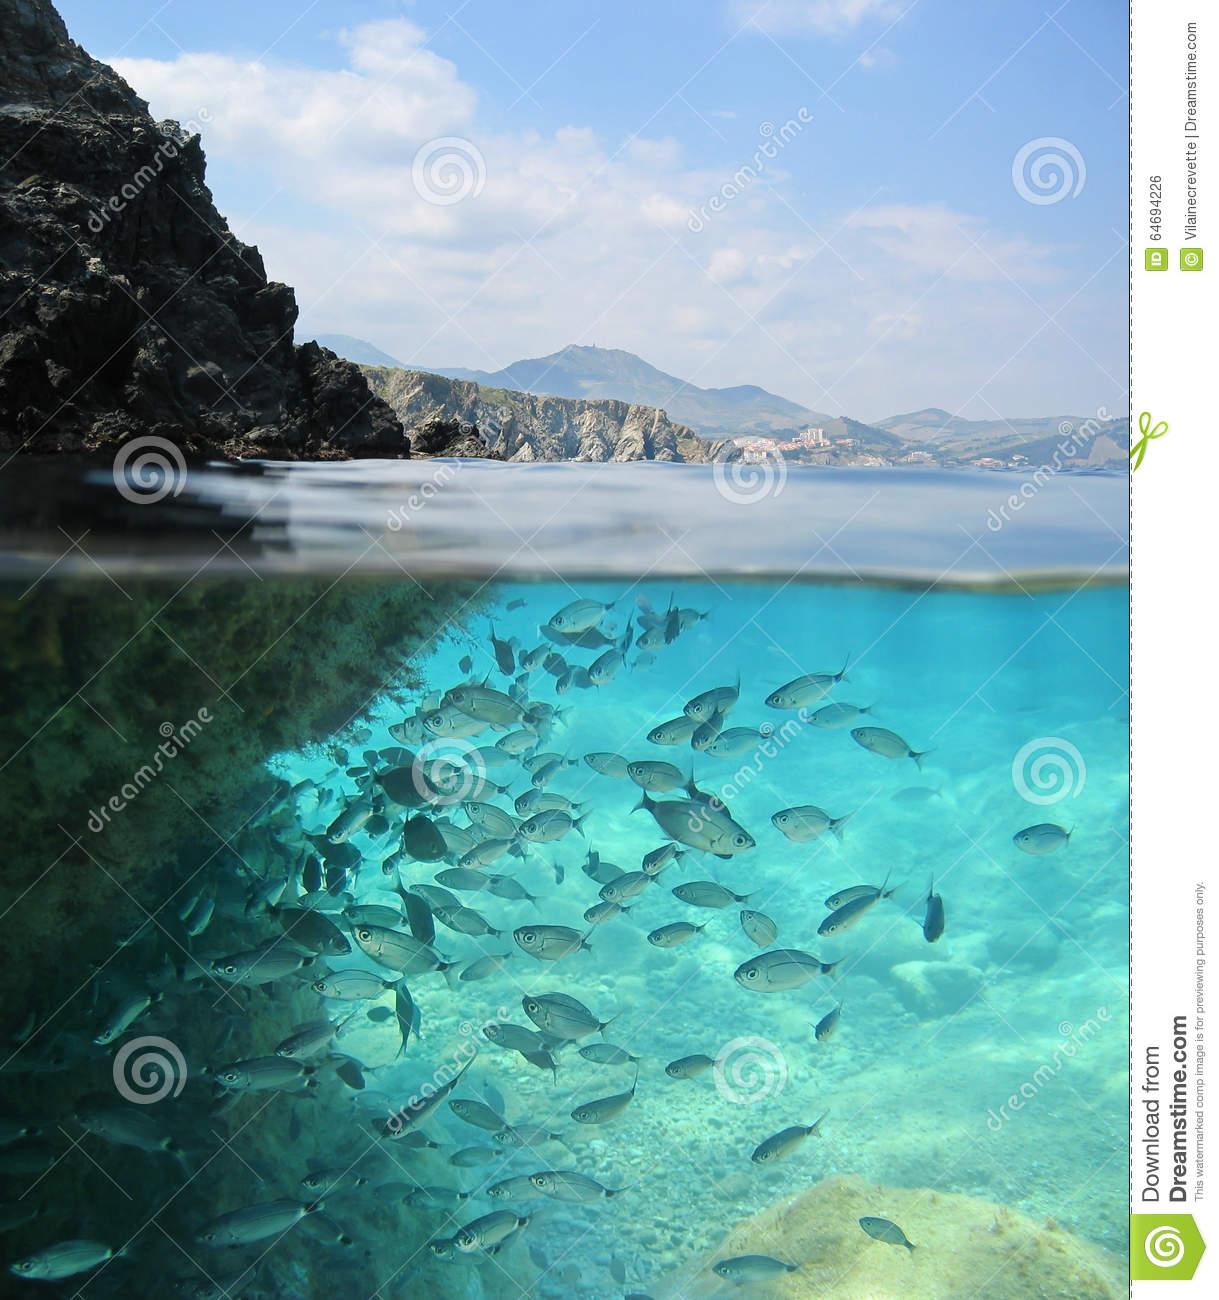 Rocky Shore With School Of Fish Underwater France Stock Photo.